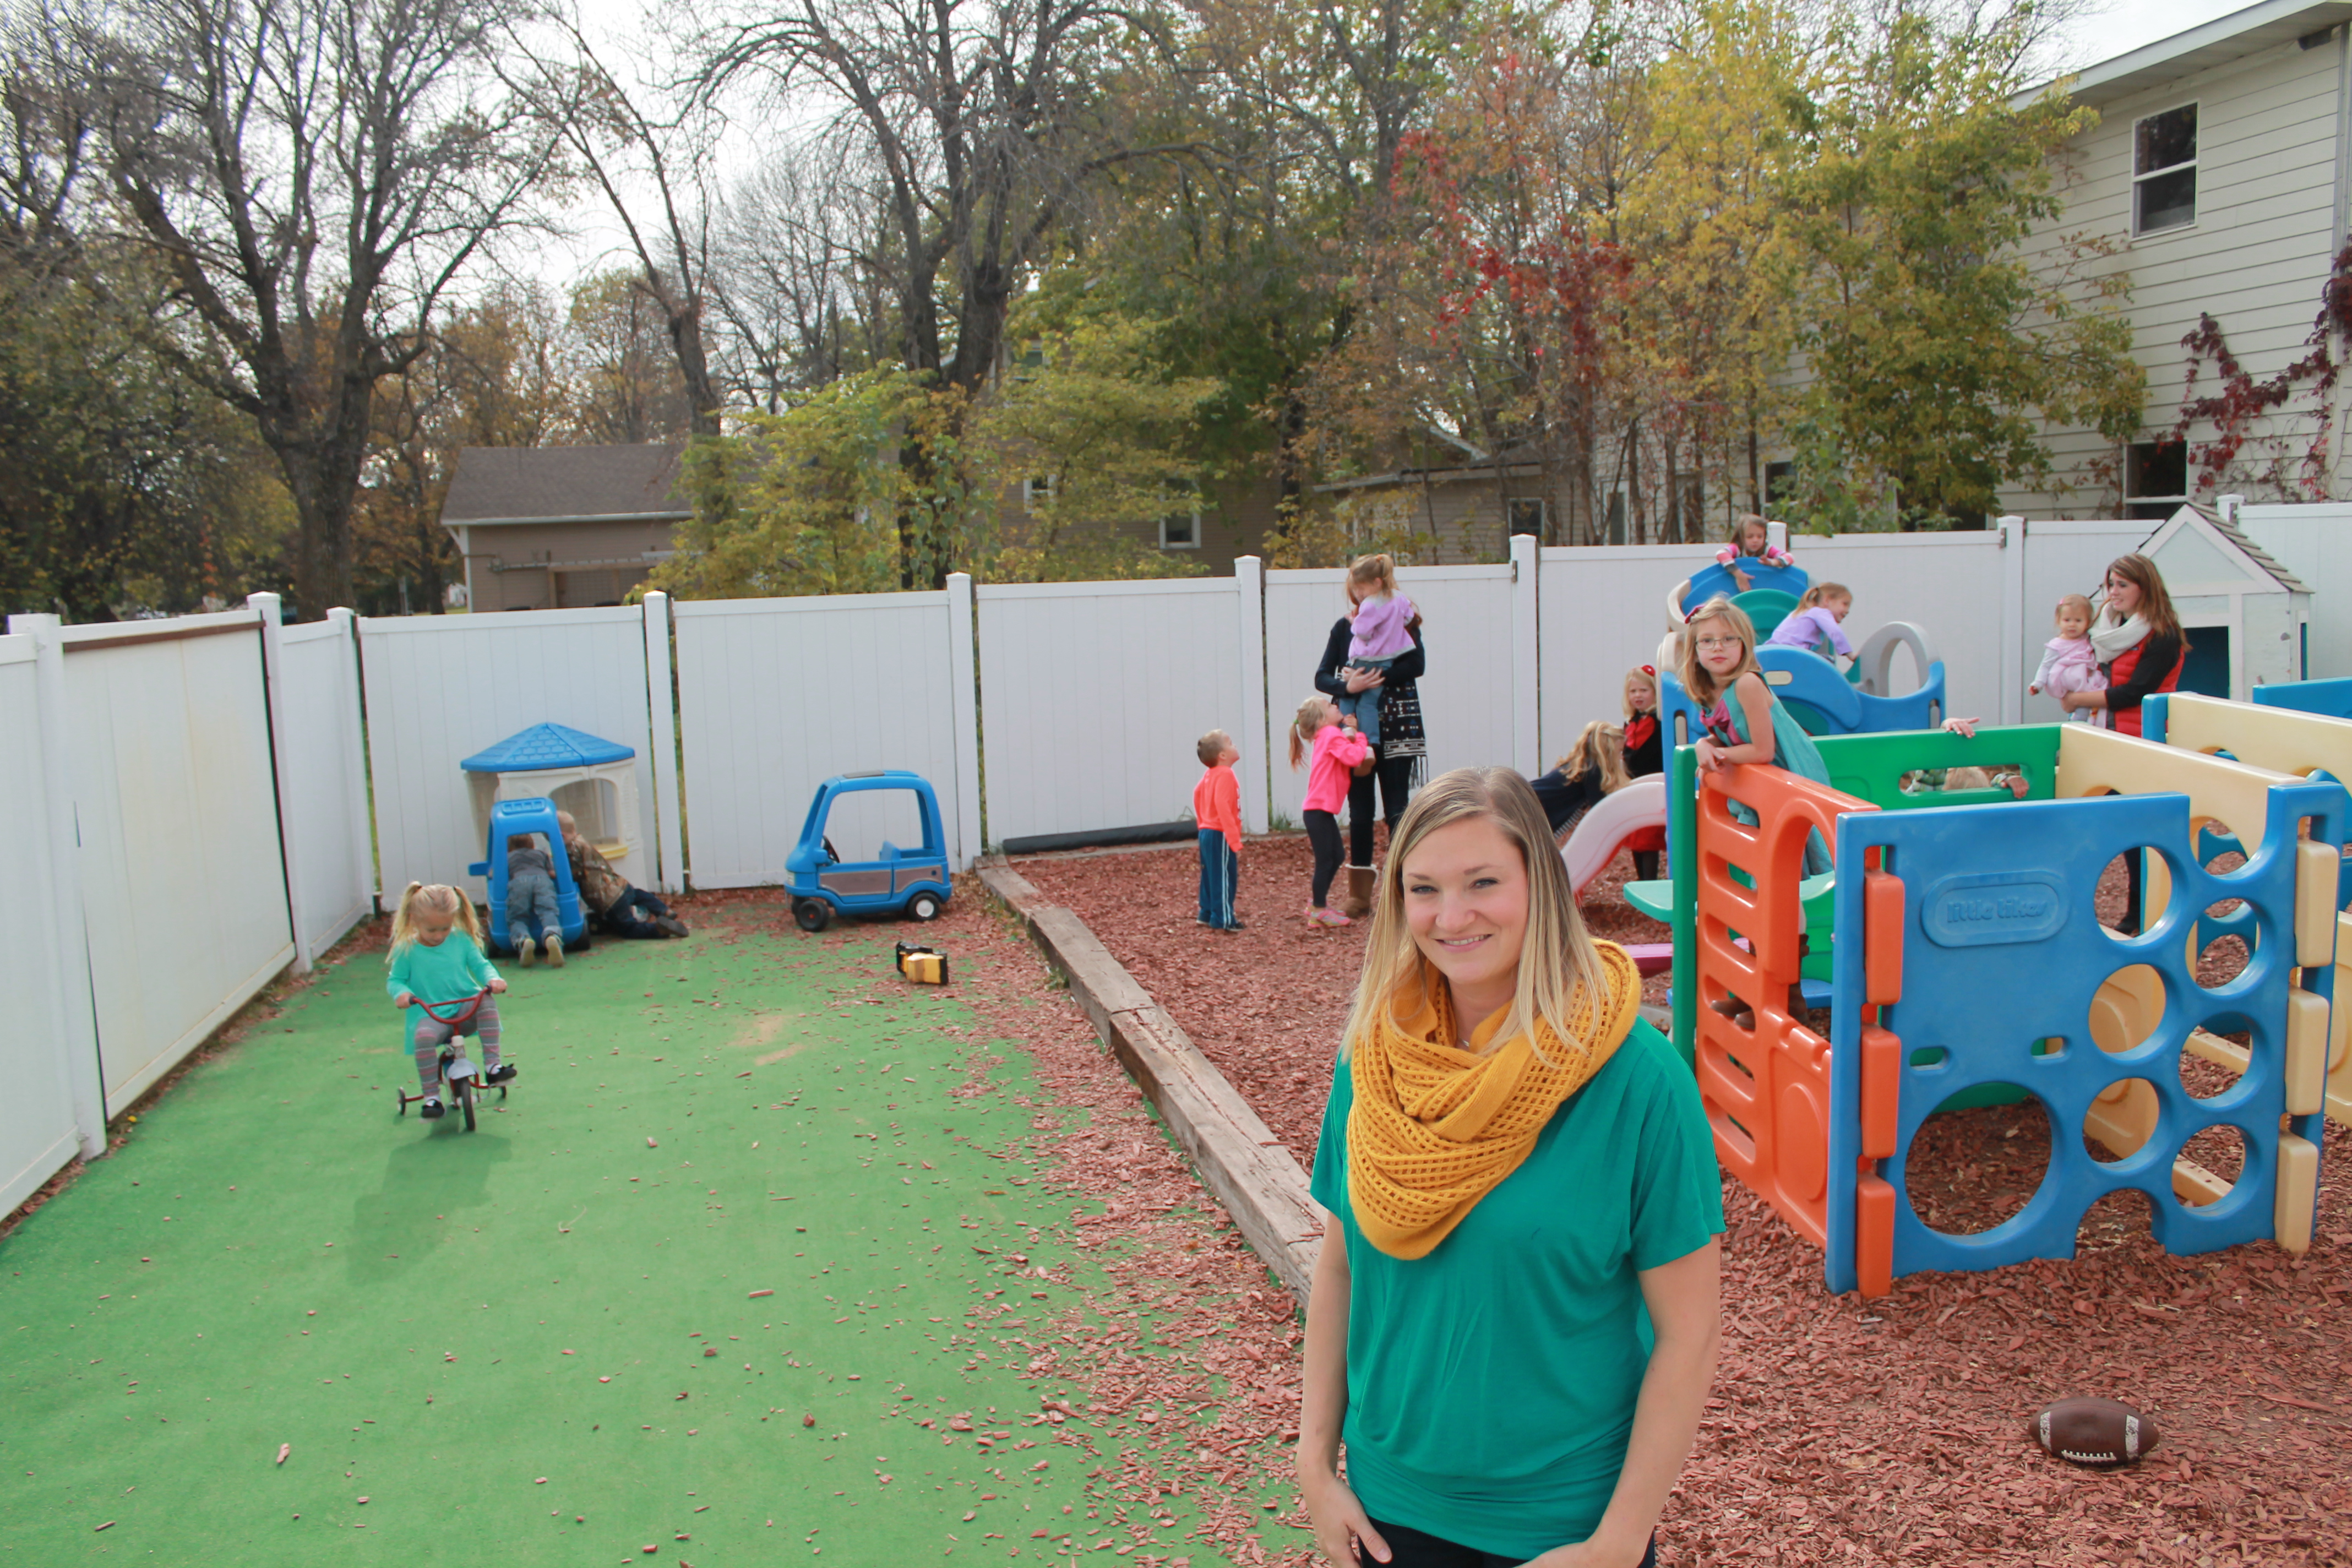 Above: Amber Uphoff, director of Arlington's community day care, says she can't imagine raising her family anywhere else after moving from a larger city last year.